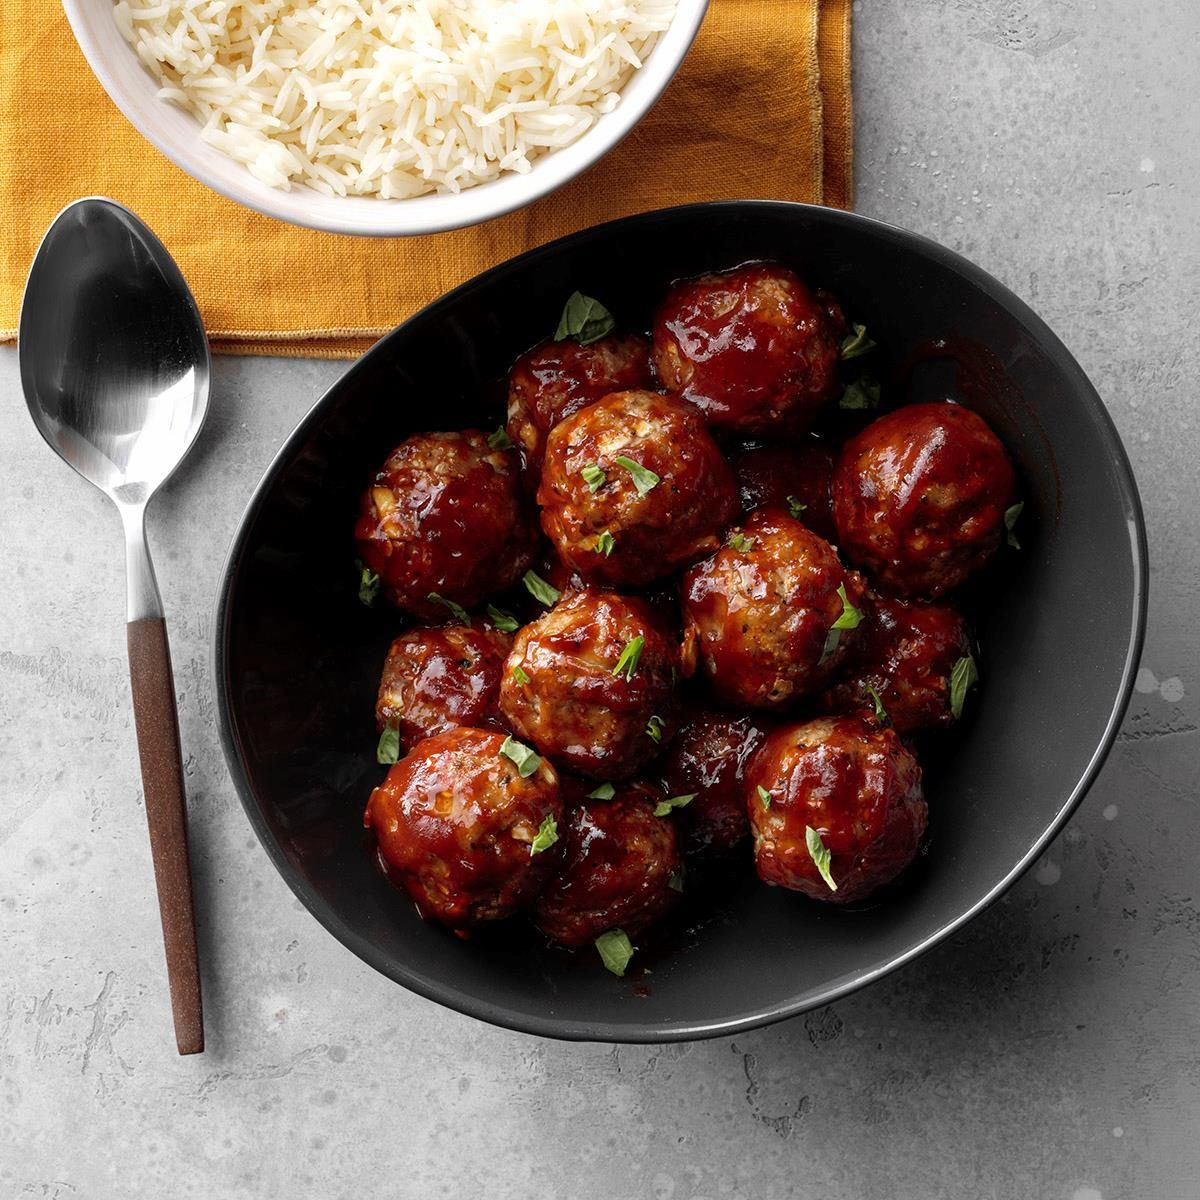 Day 20: Sneaky Turkey Meatballs